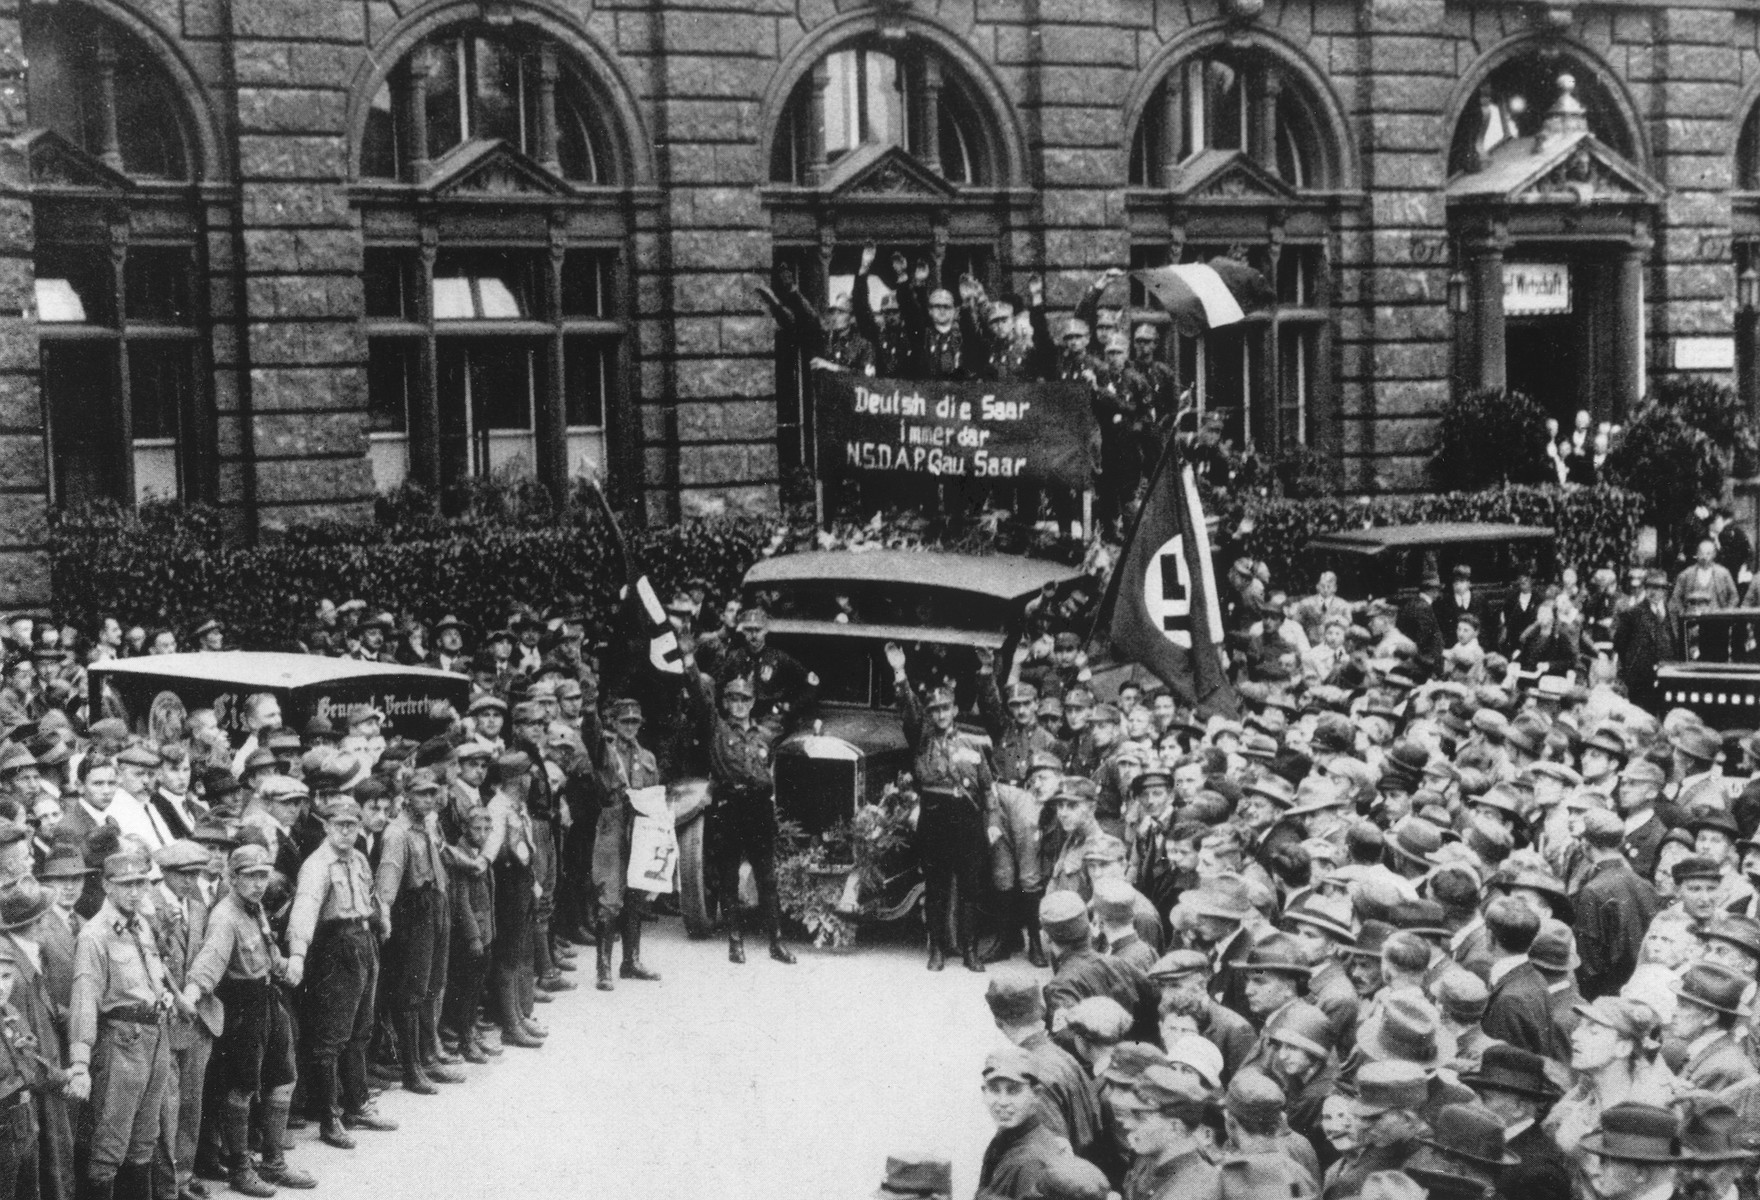 An SA detachment from the Saarland attends a Nazi Party rally in Nuremberg.